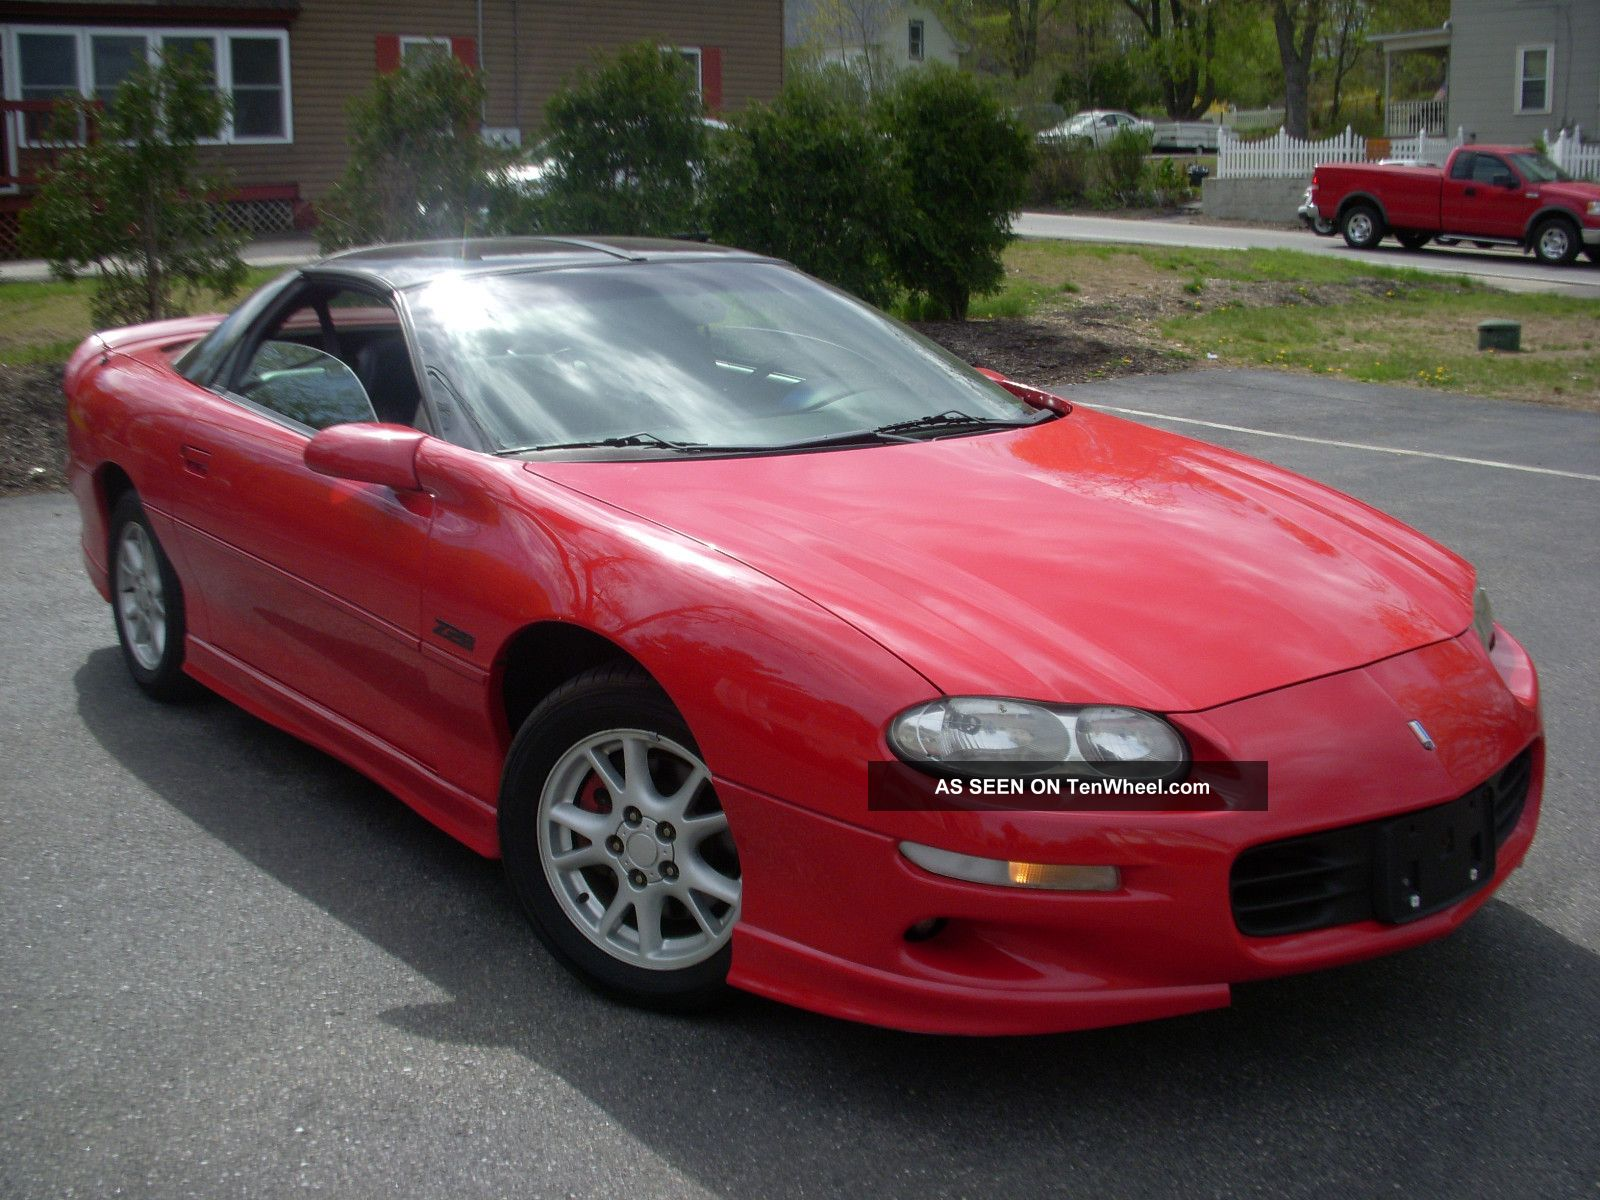 2000 chevrolet camaro z28 5 7 liter t top 6 speed. Black Bedroom Furniture Sets. Home Design Ideas